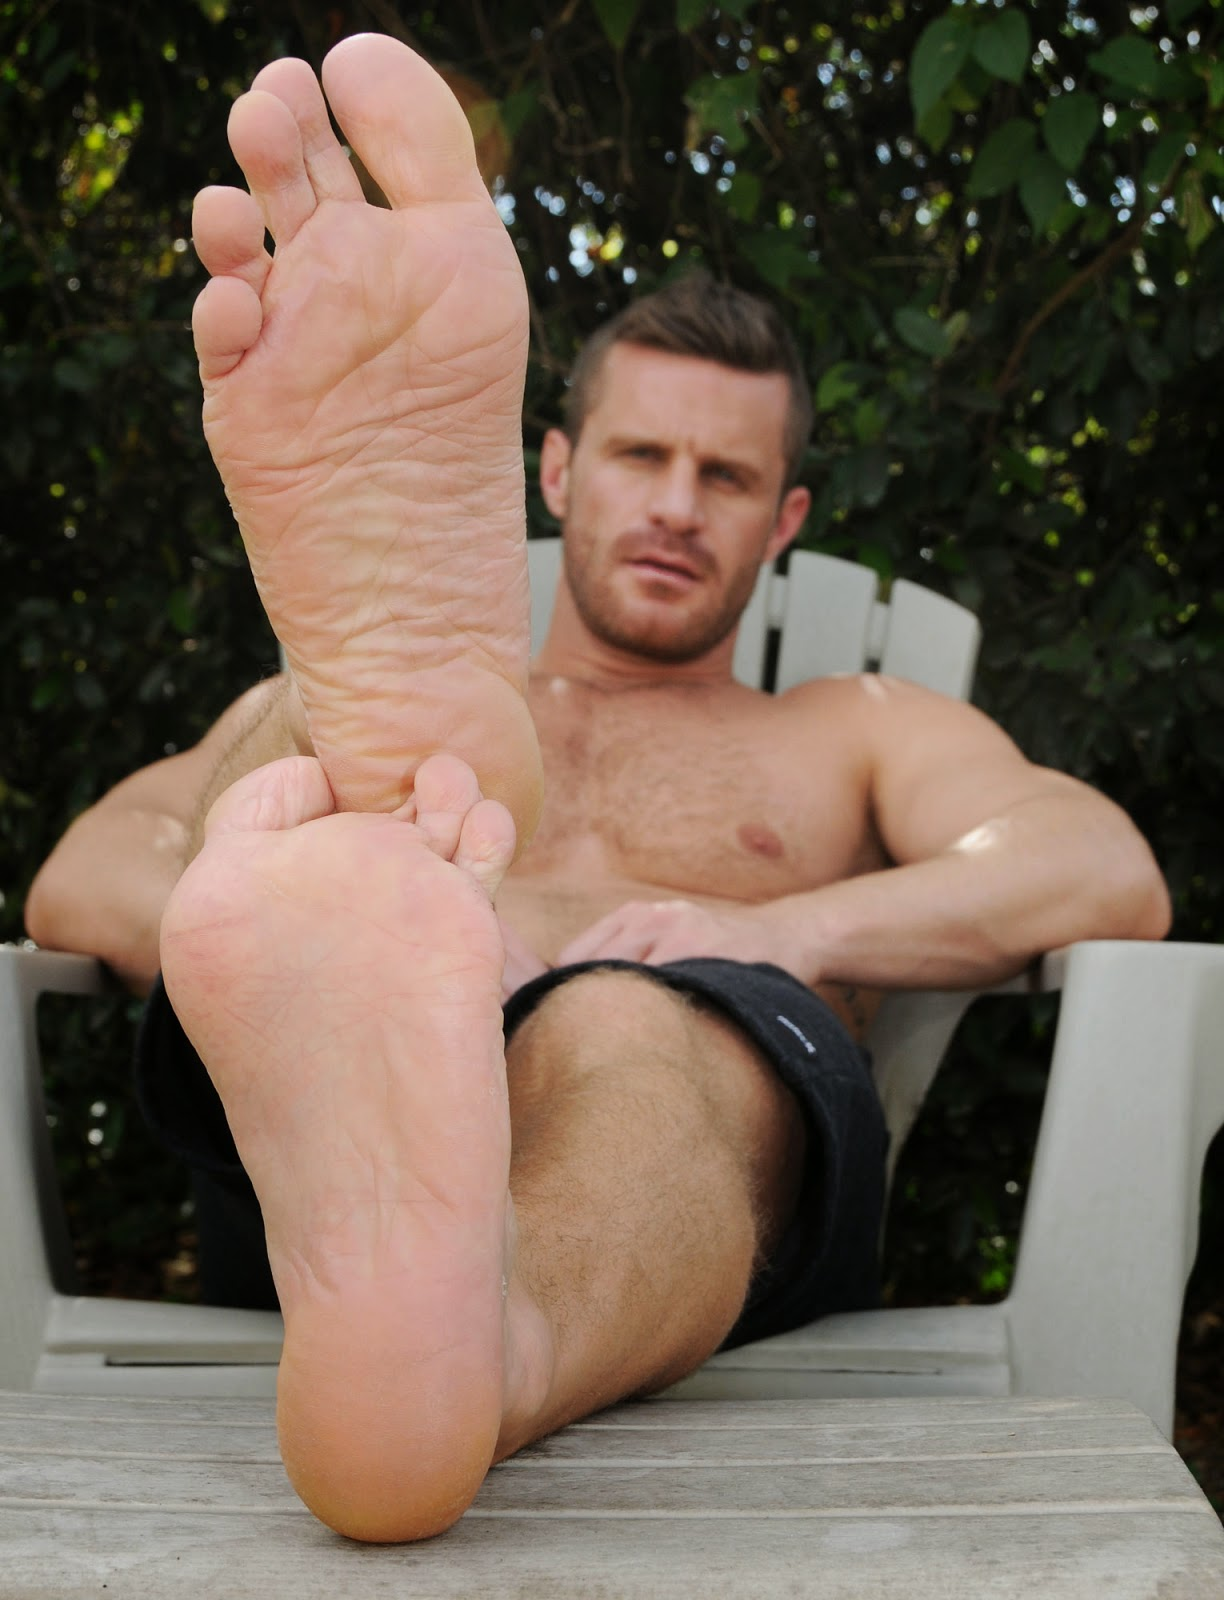 Gay Foot Fetish Sites